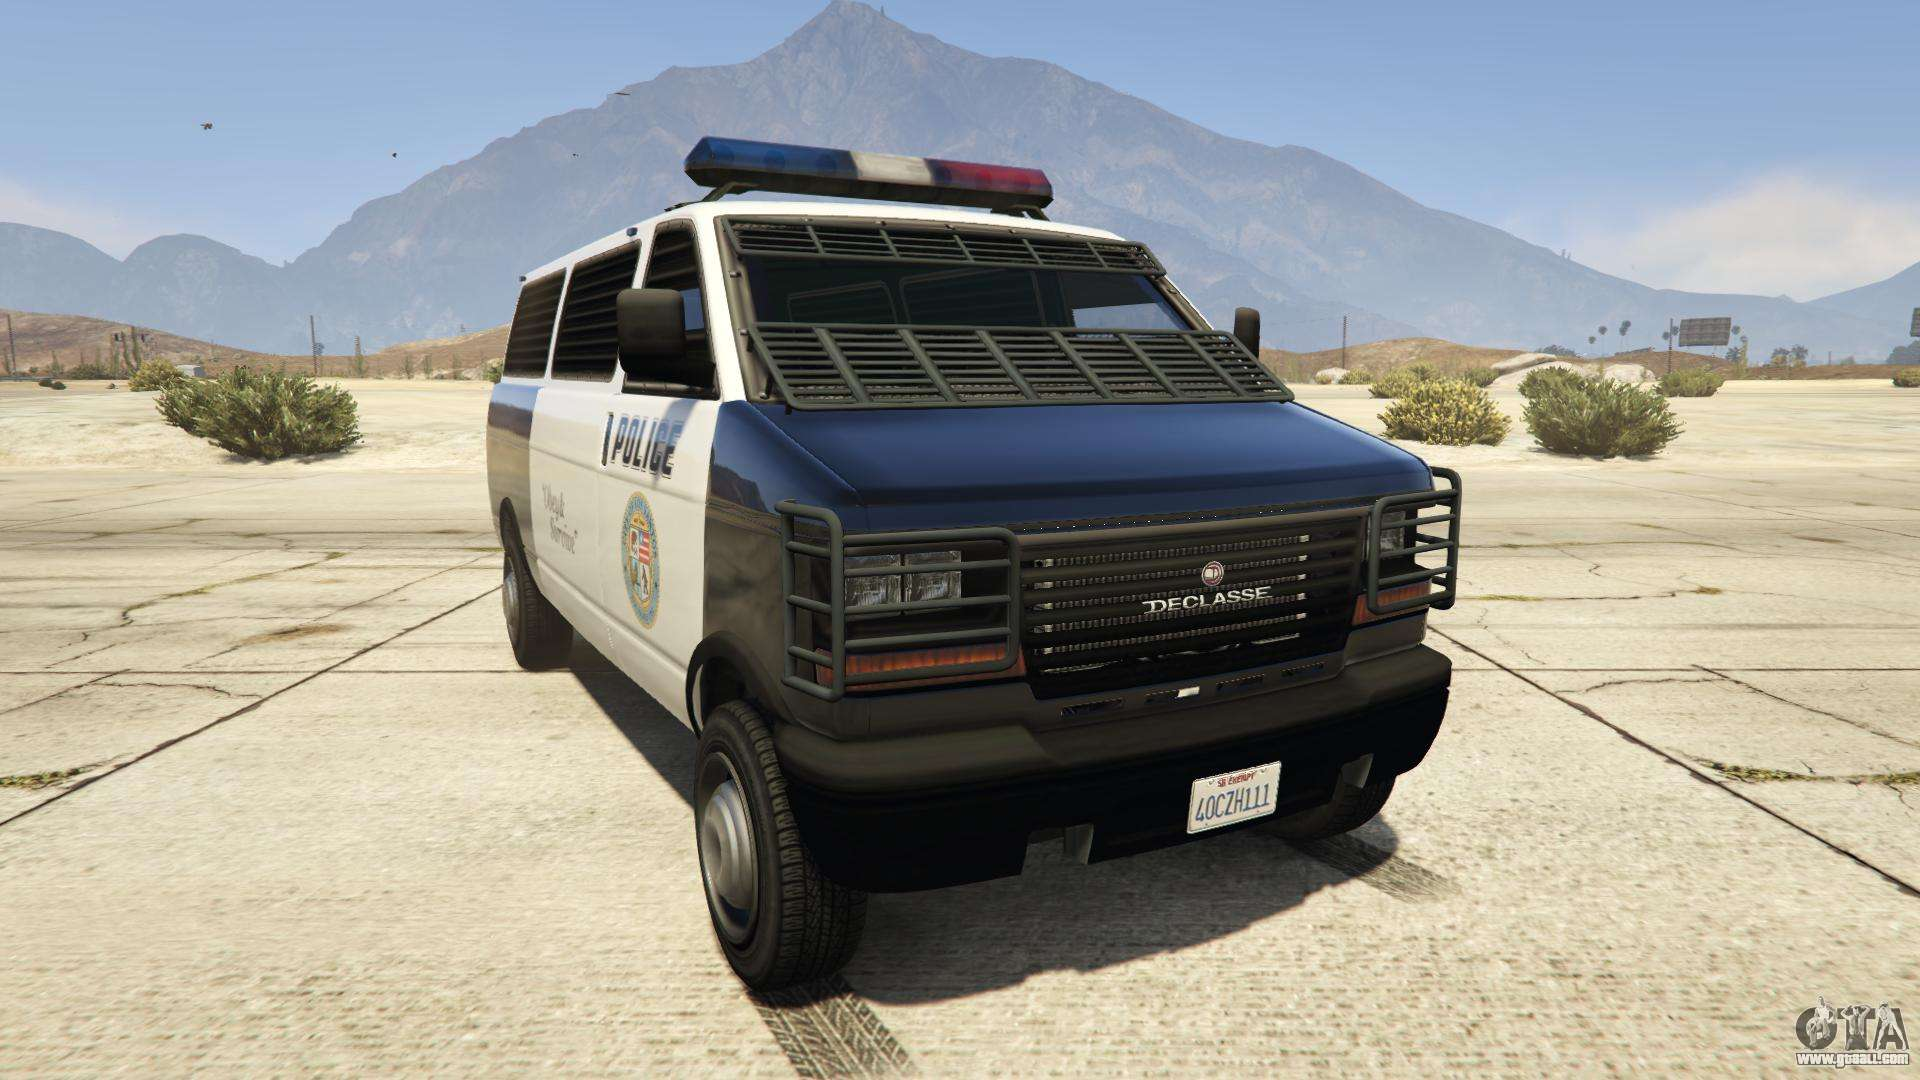 GTA 5 Declasse Police Transporter - front view